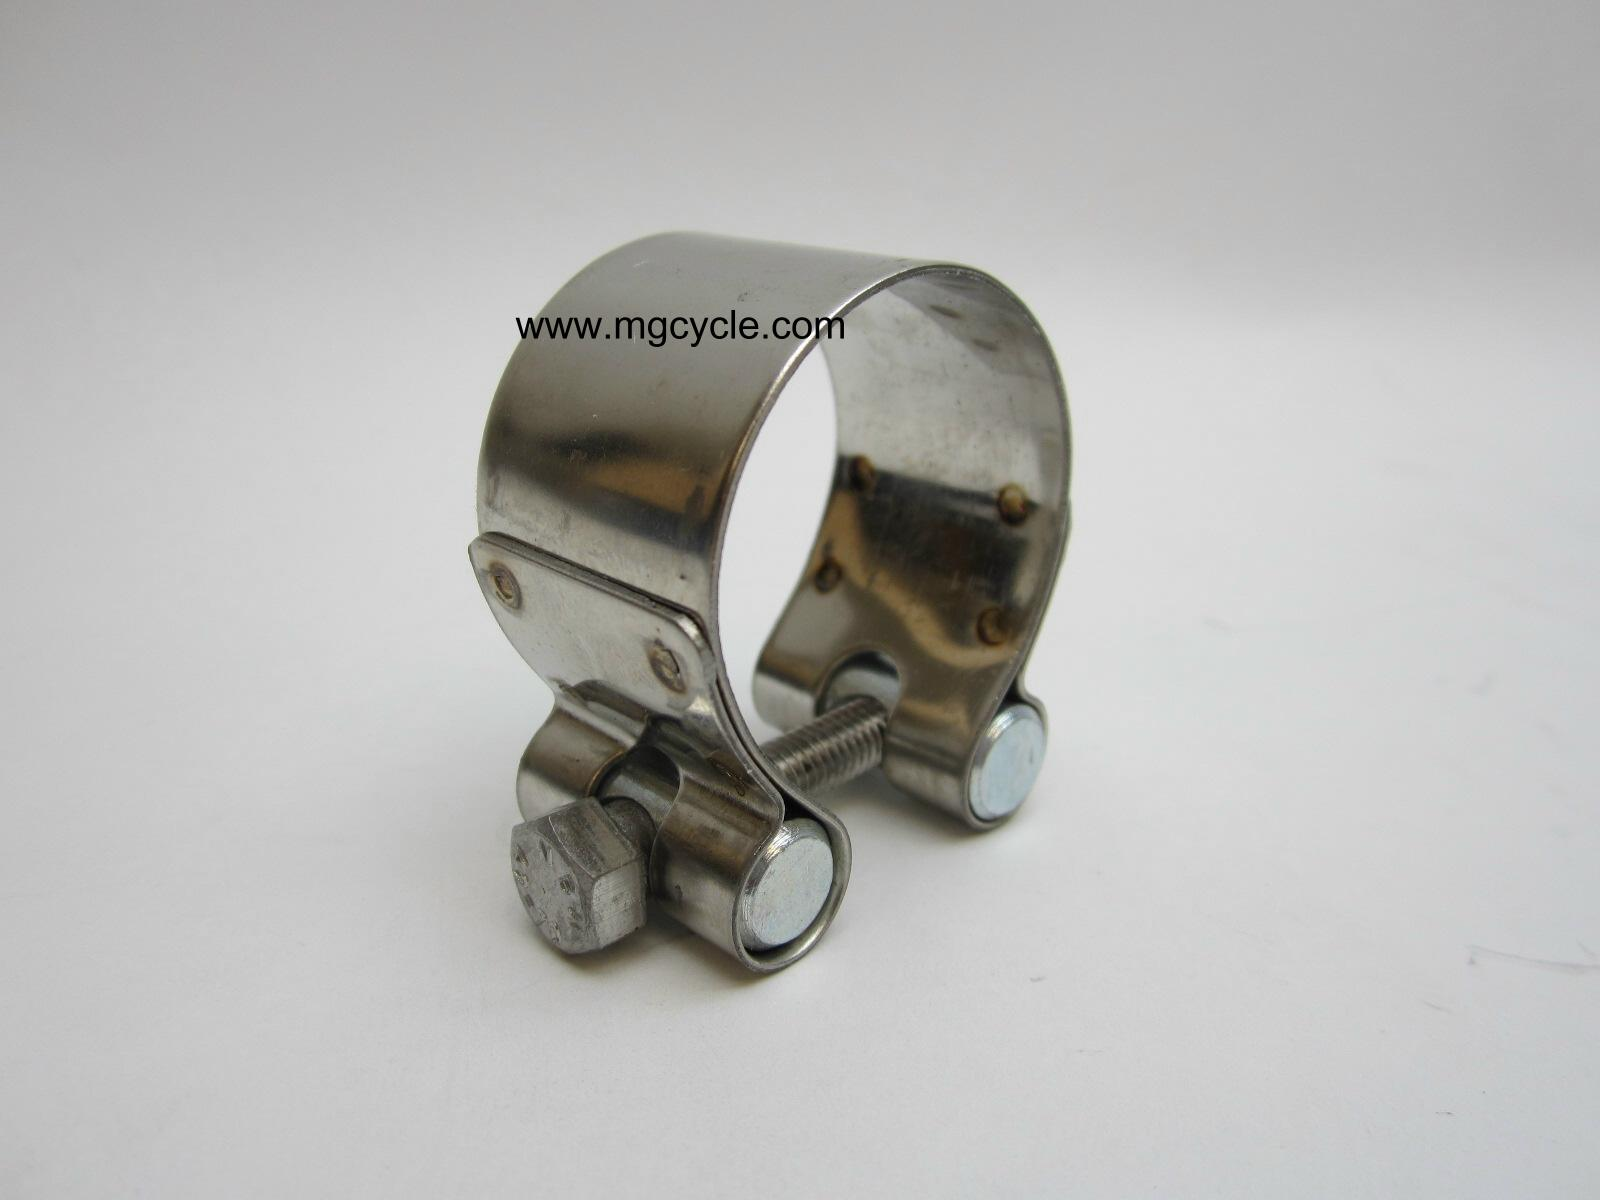 crossover clamp, Eld/Amb/V700, stainless steel exhaust clamp